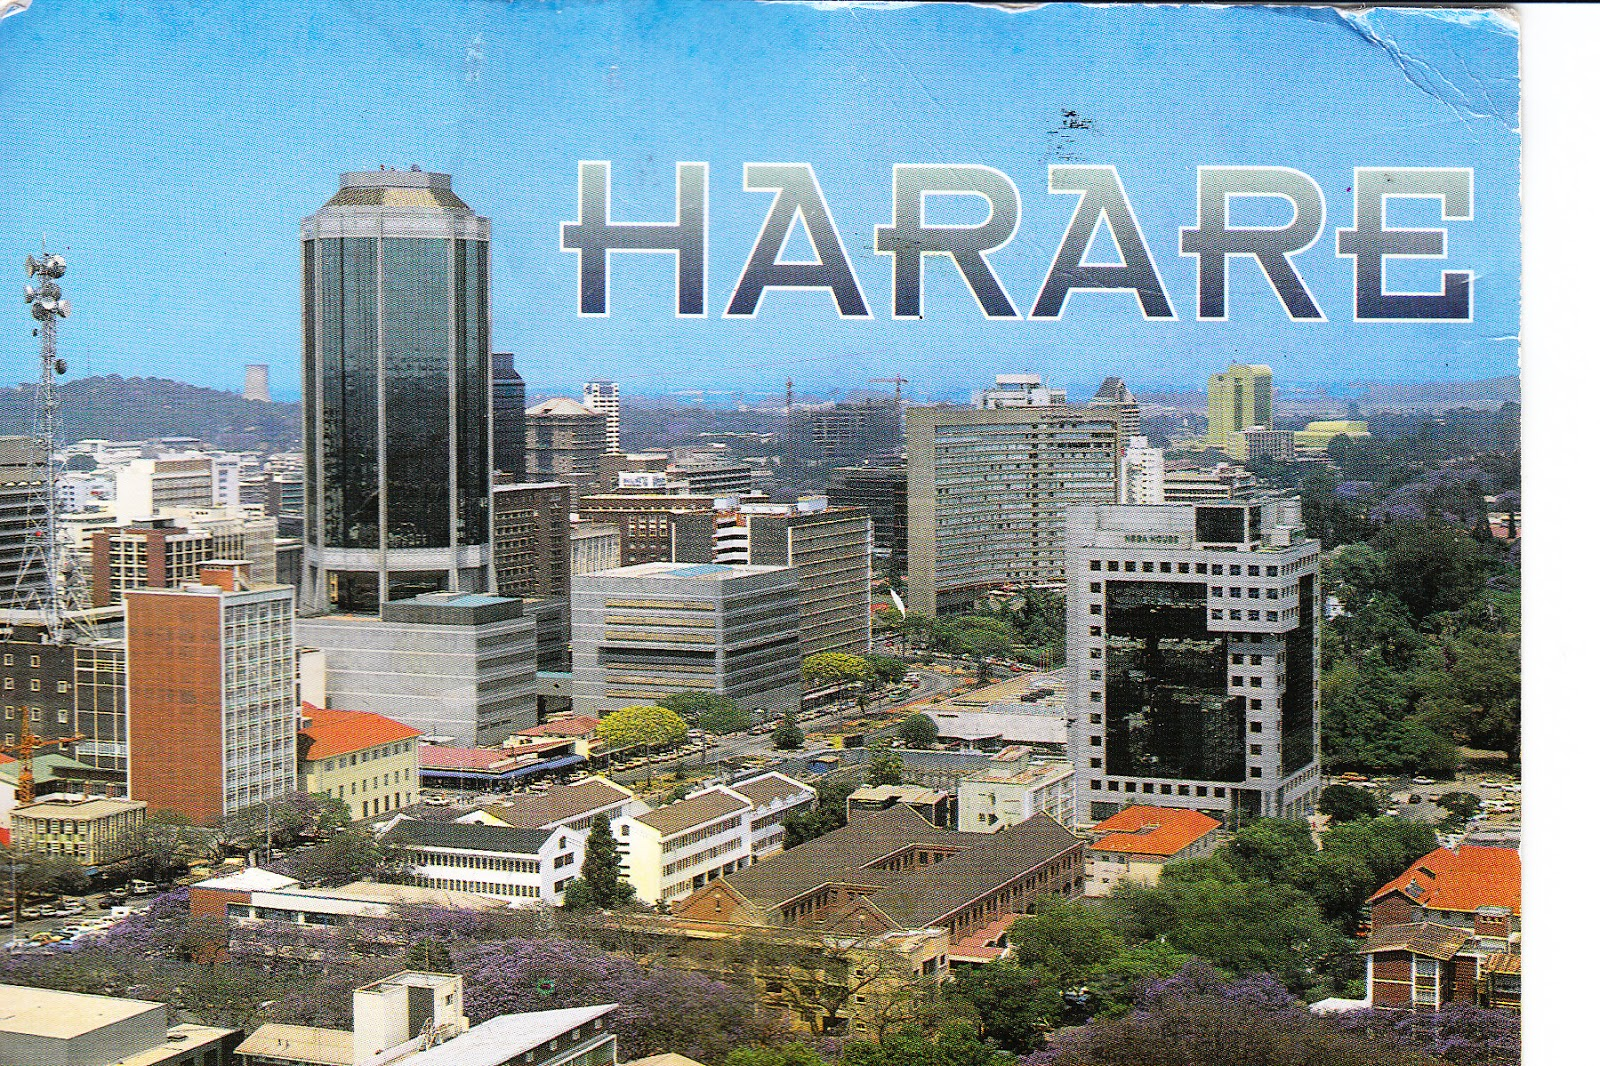 Harare Zimbabwe  city photos gallery : Here's a card of the skyline of Harare, Zimbabwe. Harare is the ...